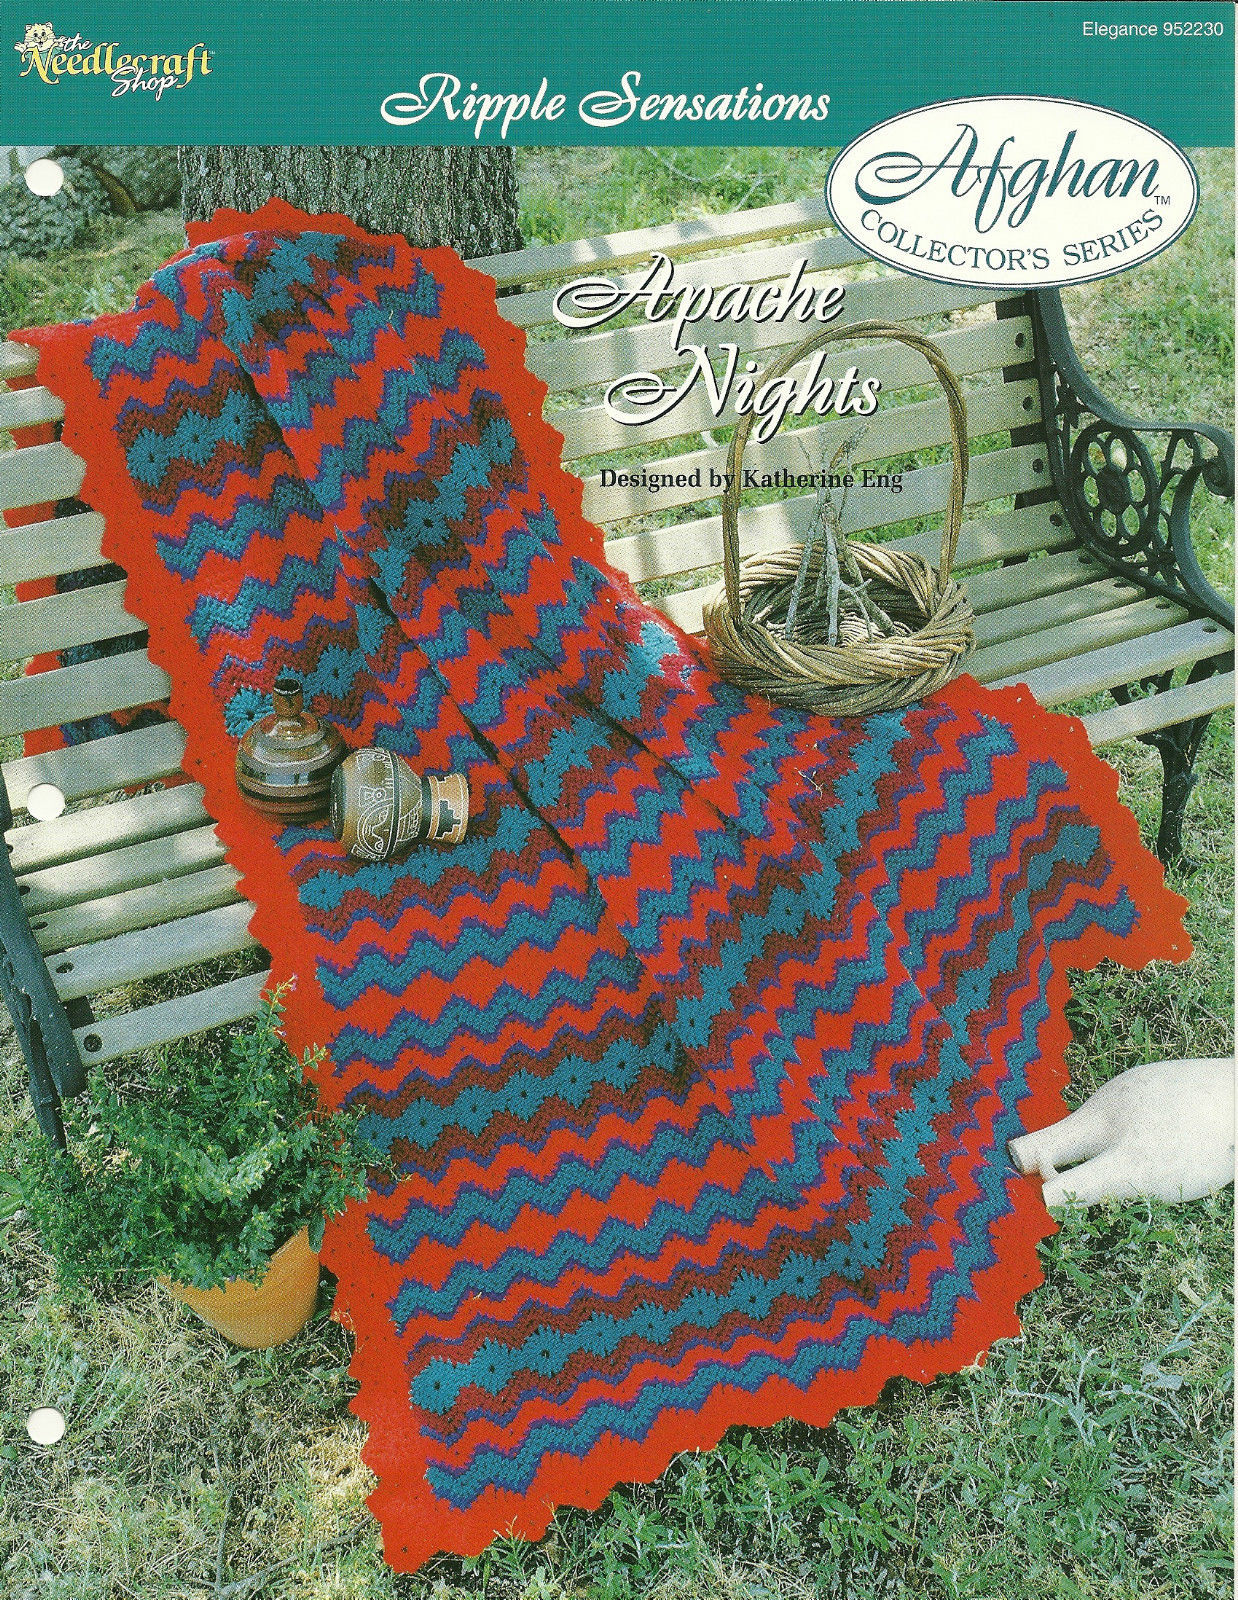 Needlecraft Shop Crochet Pattern 952230 Apache Nights Afghan Collectors Series